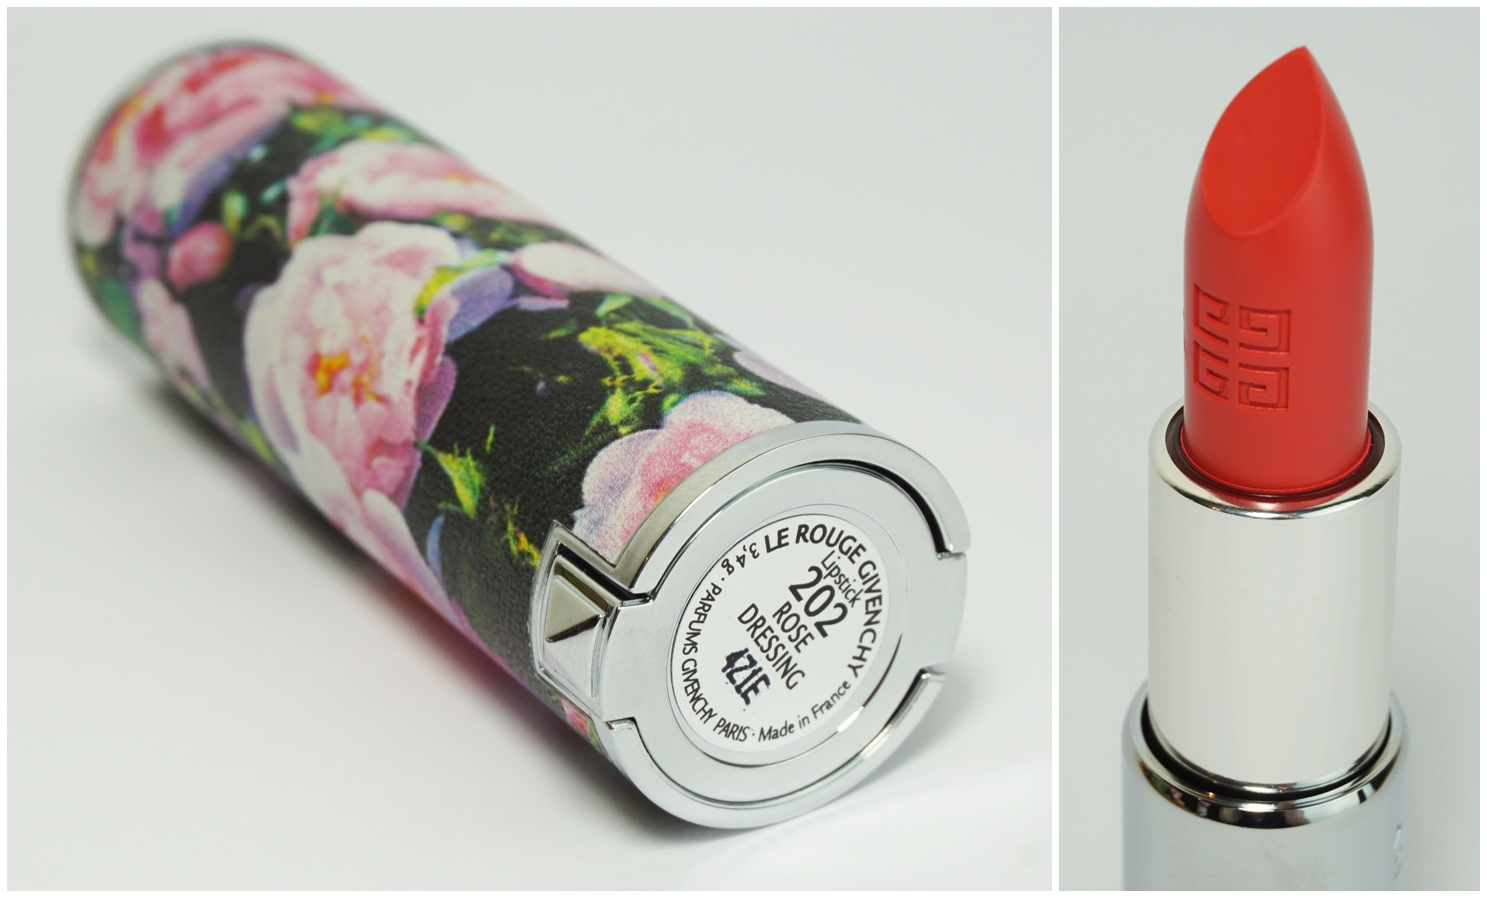 Givenchy - Le Rouge 202 Rose Dressing Lipstick (Couture Edition)